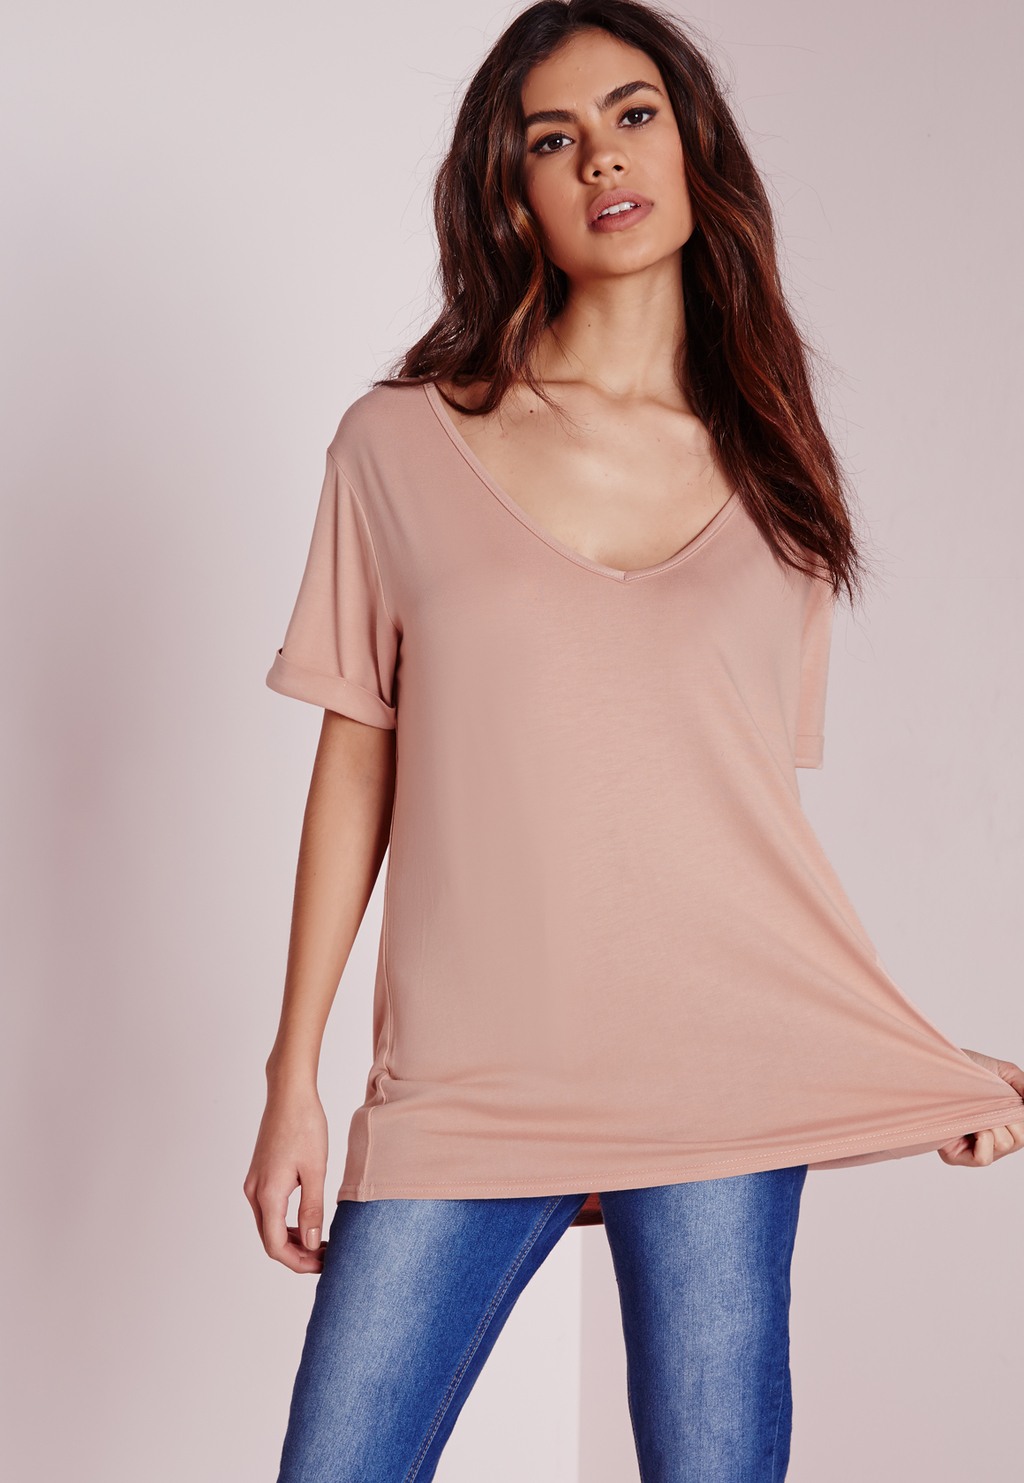 Petite Boyfriend V Neck T Shirt Nude, Beige - neckline: low v-neck; pattern: plain; length: below the bottom; style: t-shirt; predominant colour: nude; occasions: casual; fibres: polyester/polyamide - stretch; fit: loose; sleeve length: short sleeve; sleeve style: standard; pattern type: fabric; texture group: jersey - stretchy/drapey; season: a/w 2015; wardrobe: basic